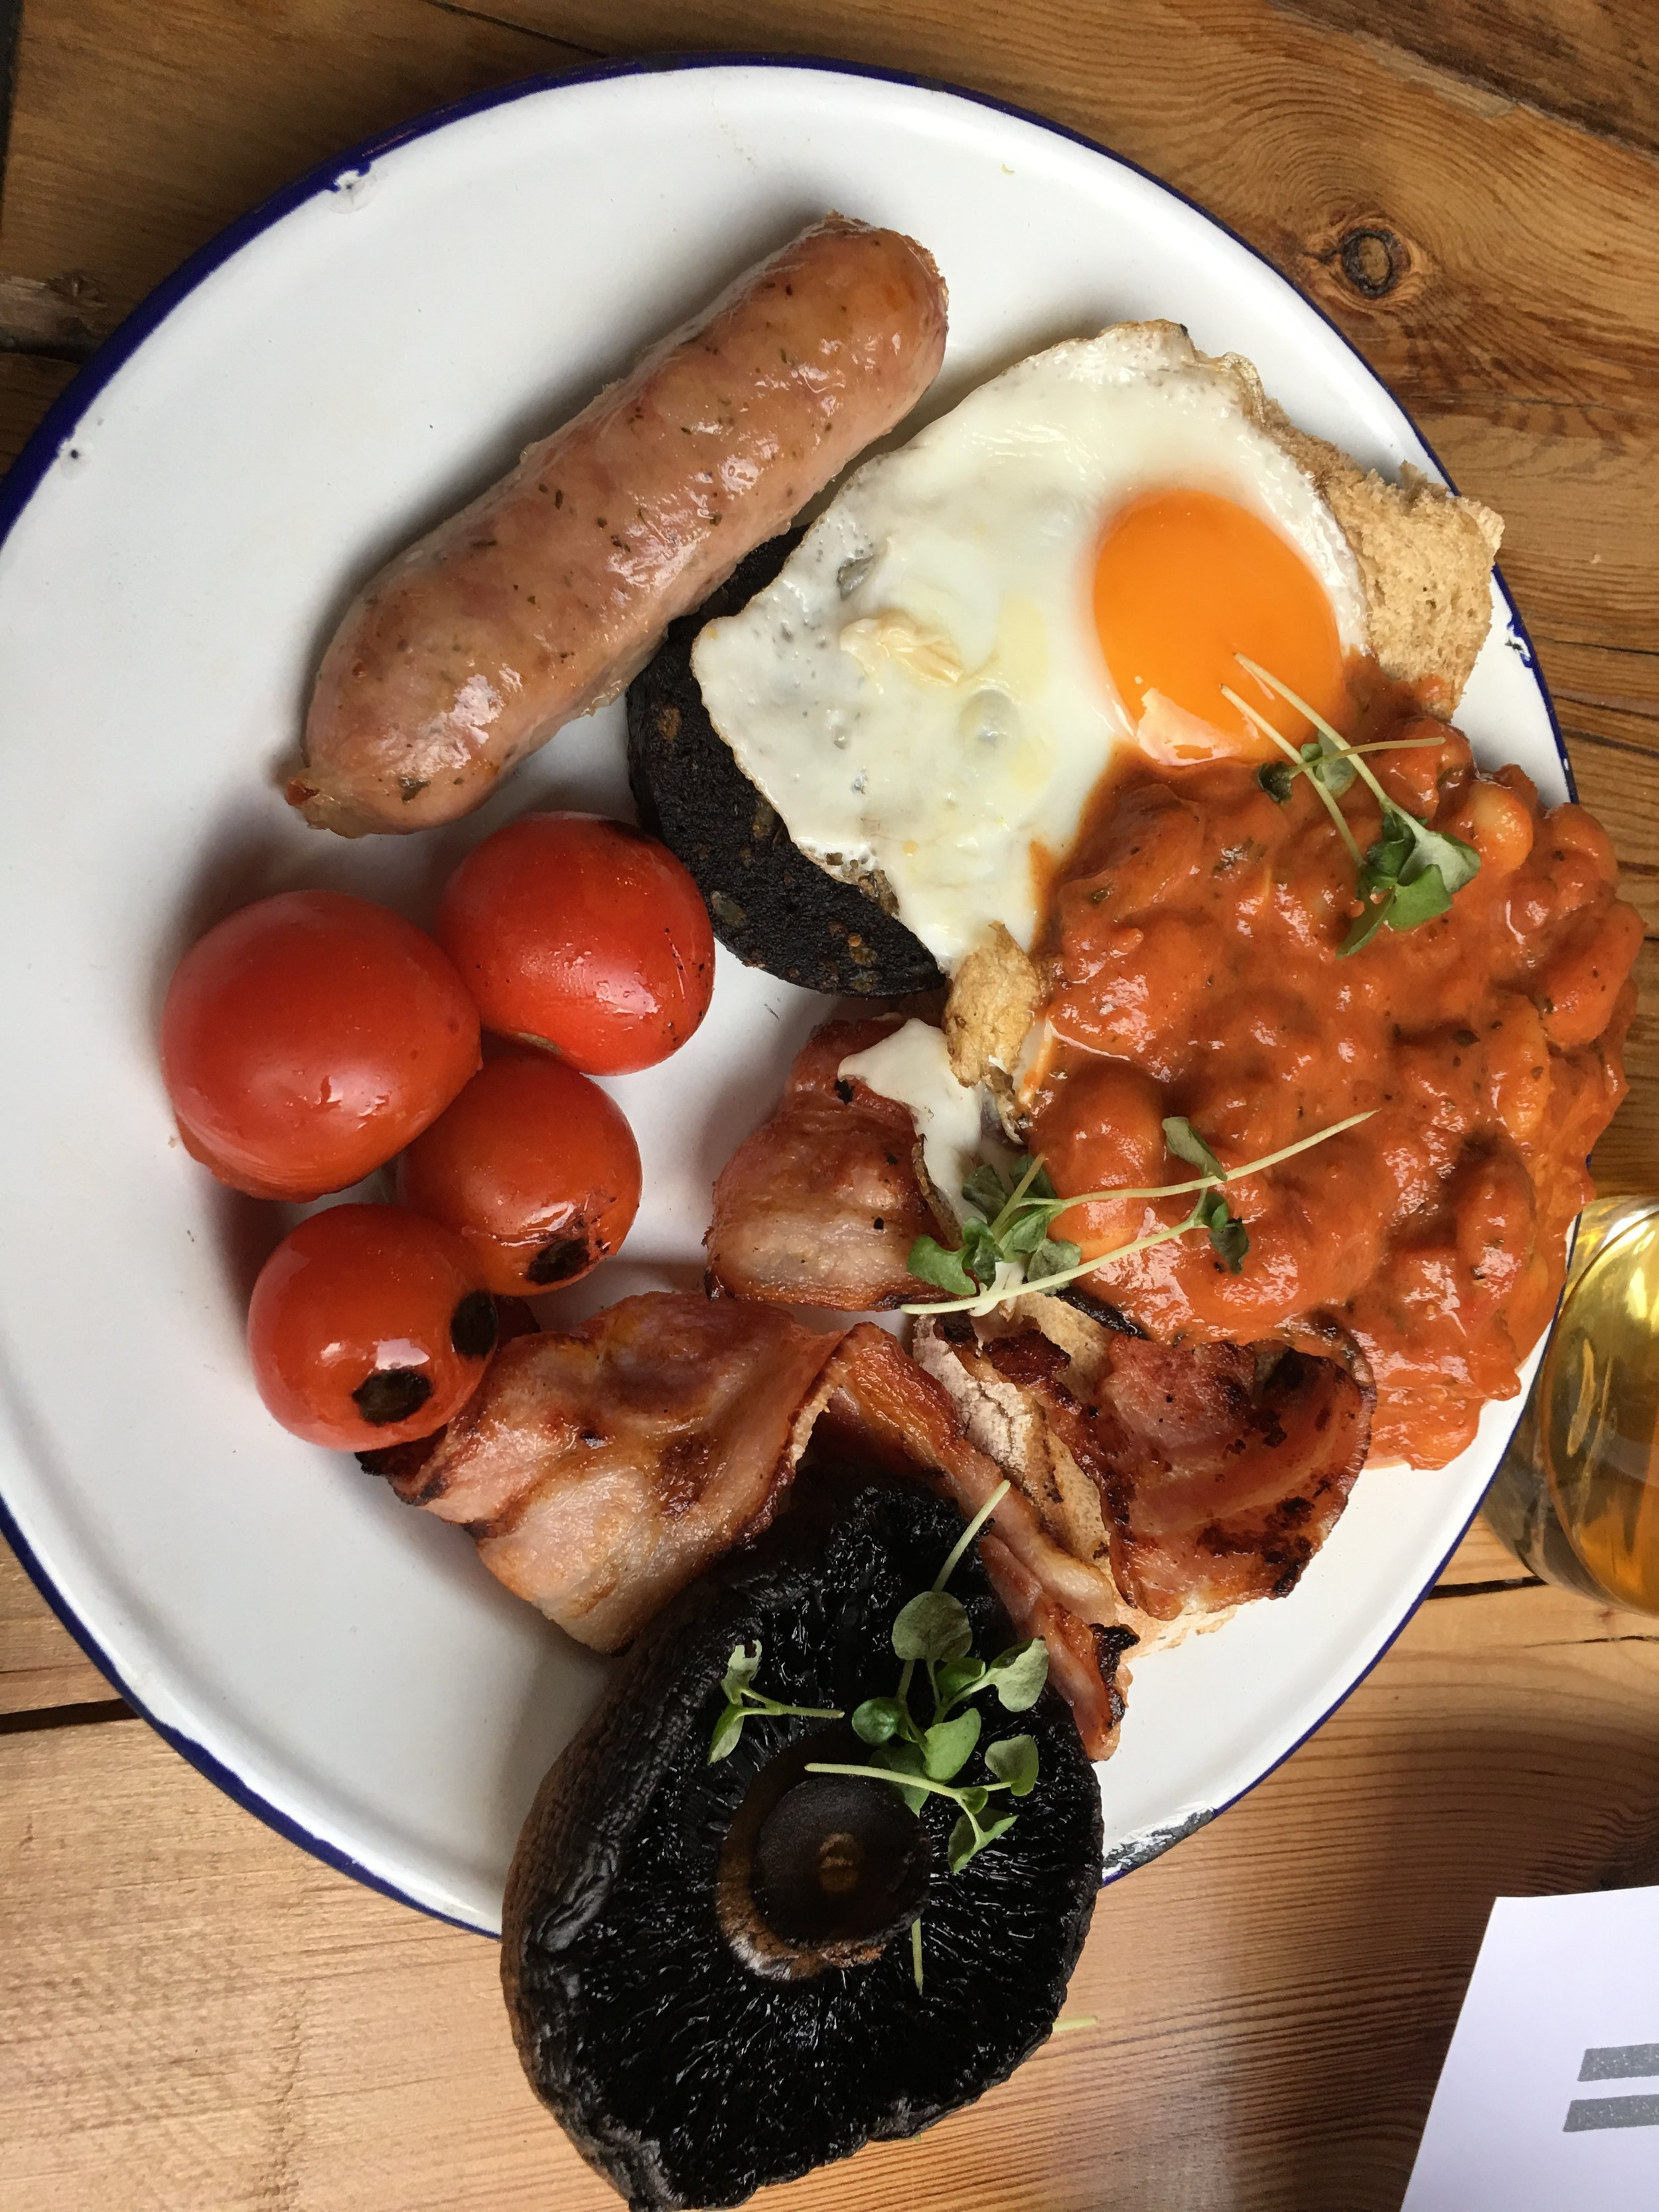 Weird sausage, egg, blistered tomatoes, black pudding (ie. blood sausage), stringy bacon, roasted mushroom, and spicy beans sitting on my toast! I had to try their version of breakfast to say I did. Wasn't all that bad.